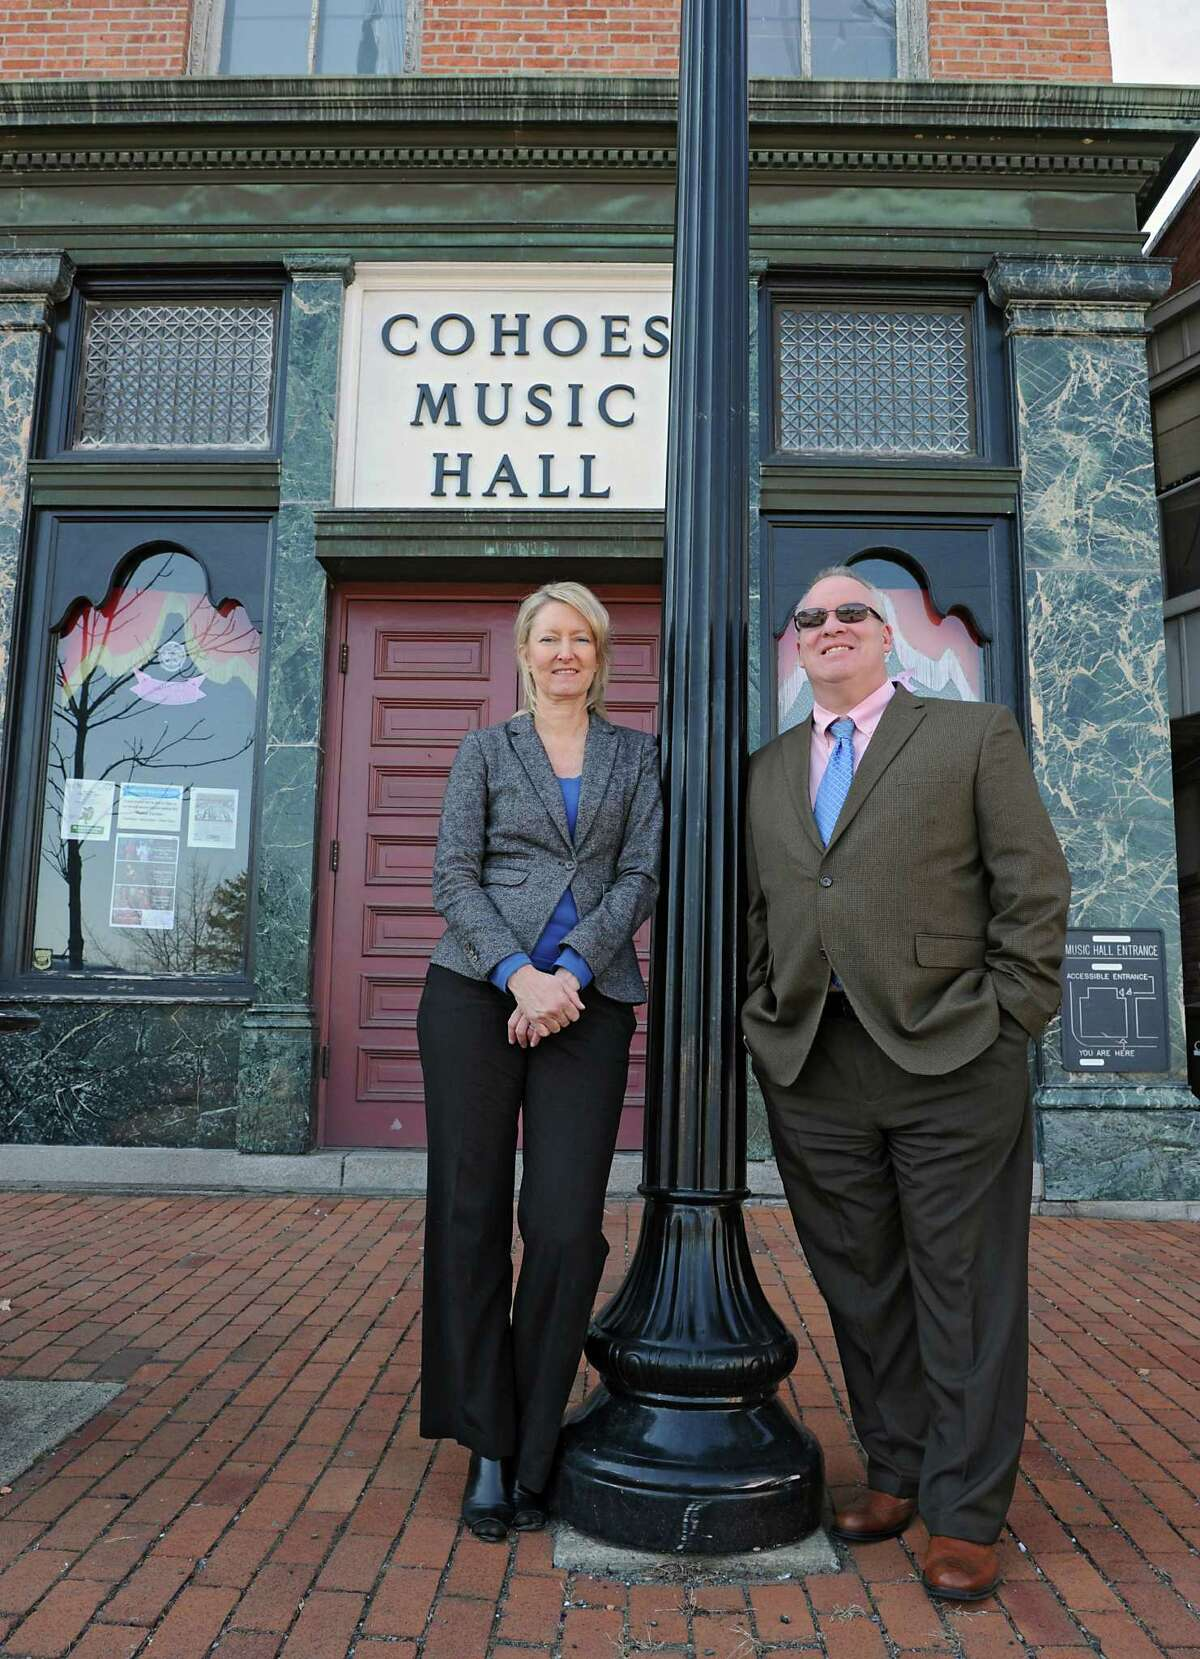 Palace Theatre manager Holly Brown and Cohoes Mayor Shawn Morse stand outside the Cohoes Music Hall on Tuesday, March 22, 2016 in Cohoes, N.Y. Palace Theatre is taking over management of Cohoes Music Hall. (Lori Van Buren / Times Union)